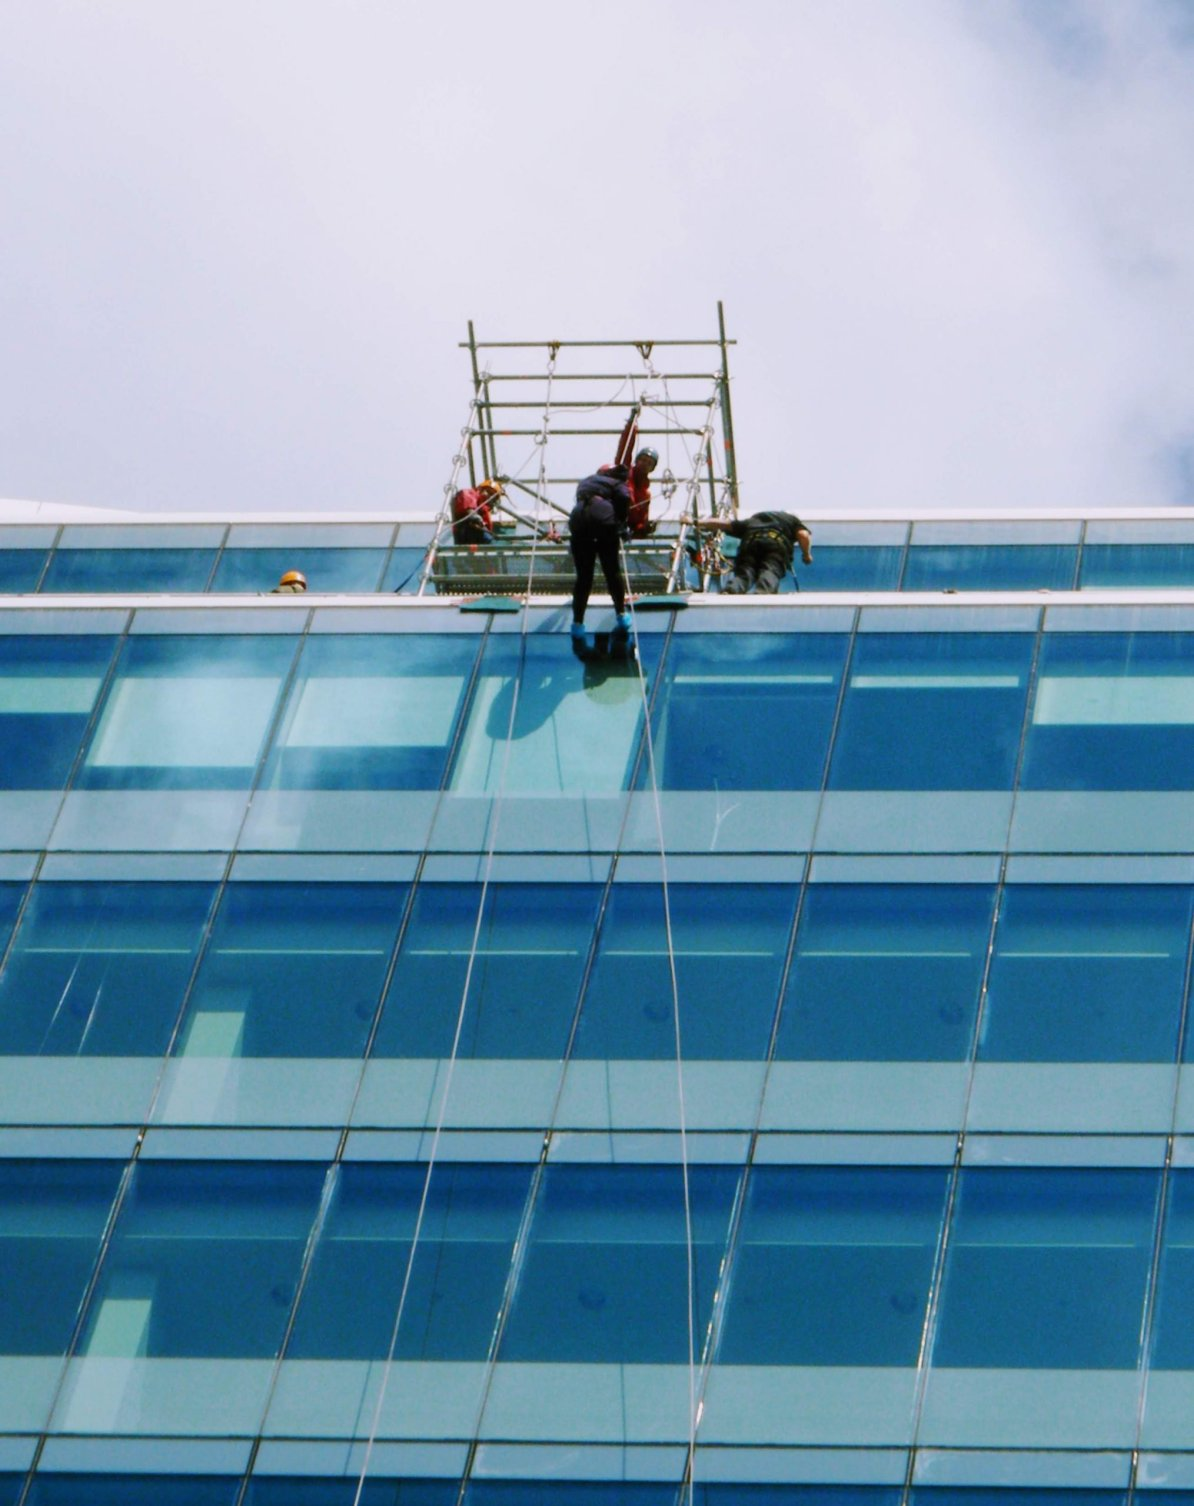 Justine abseiling The Blade in Reading